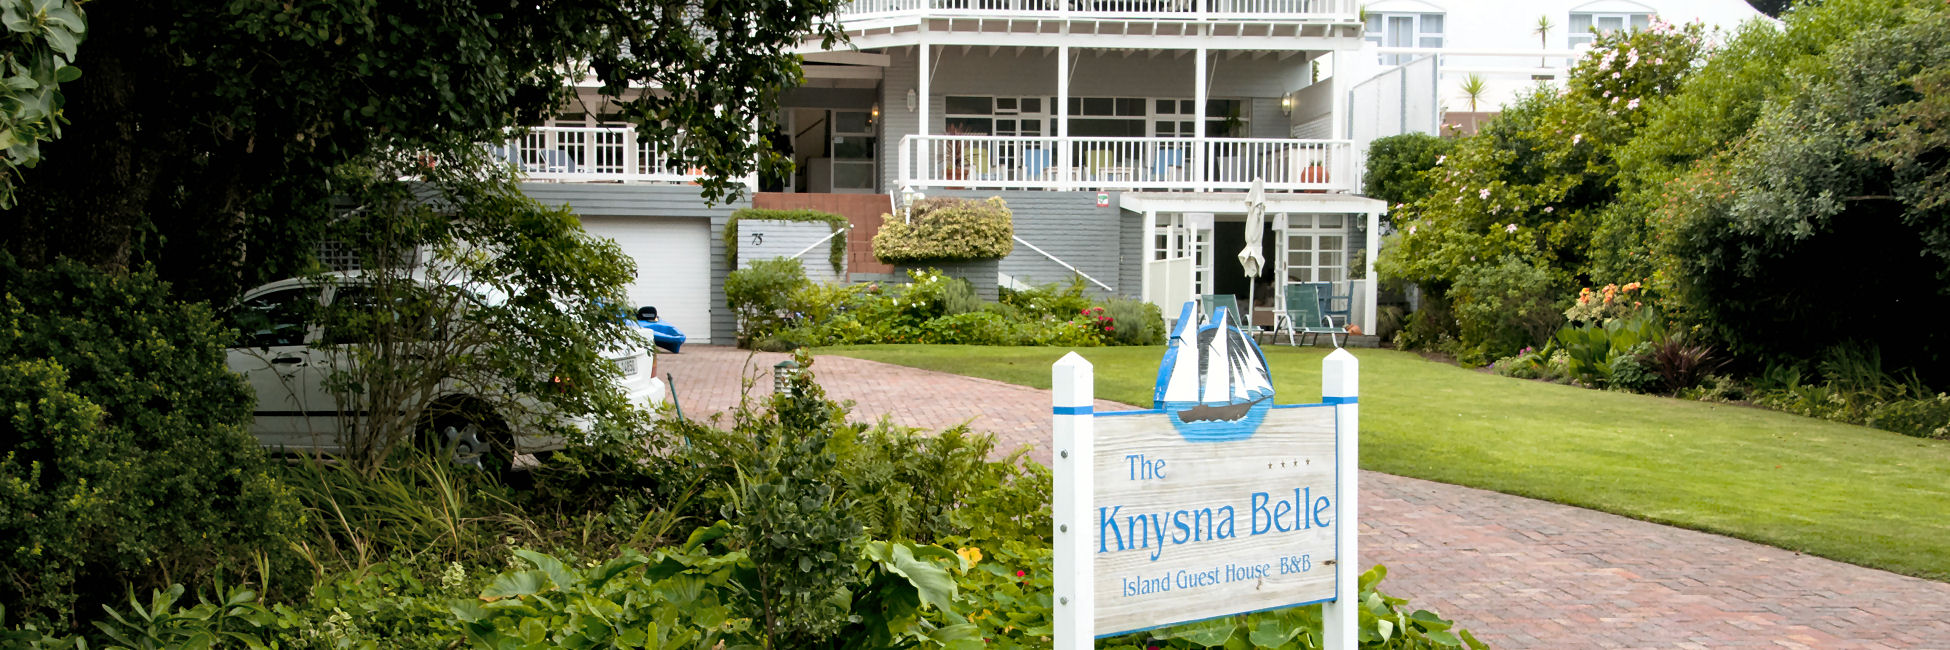 The Knysna Belle, 4 Star Guest House